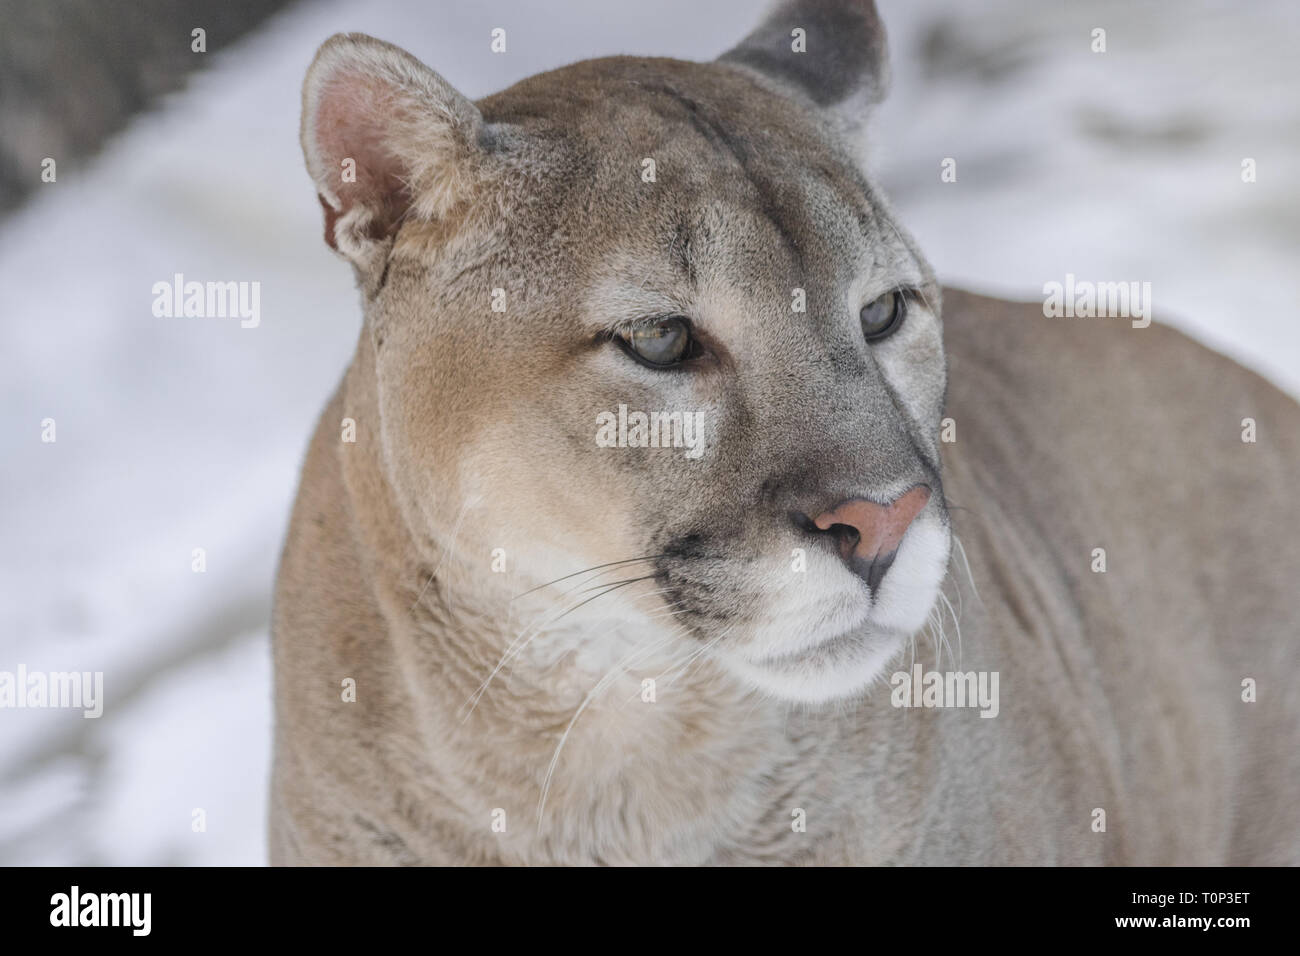 Cougar (Puma concolor), head portrait, looking to the right - Stock Image